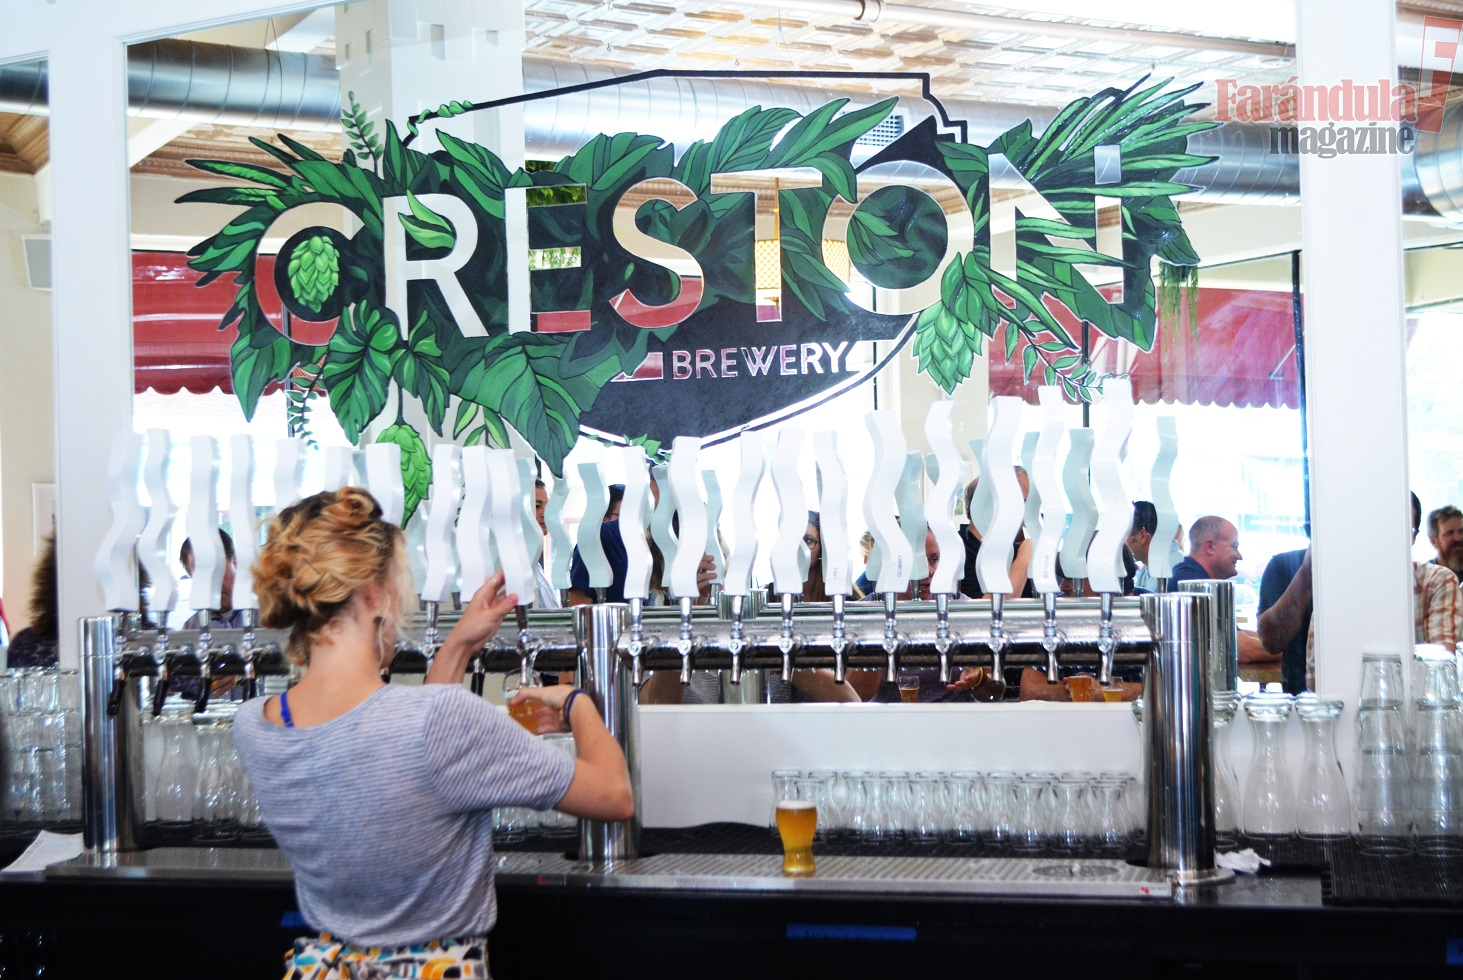 Creston Brewery Welcomes All Craft Beer Lovers of Michigan